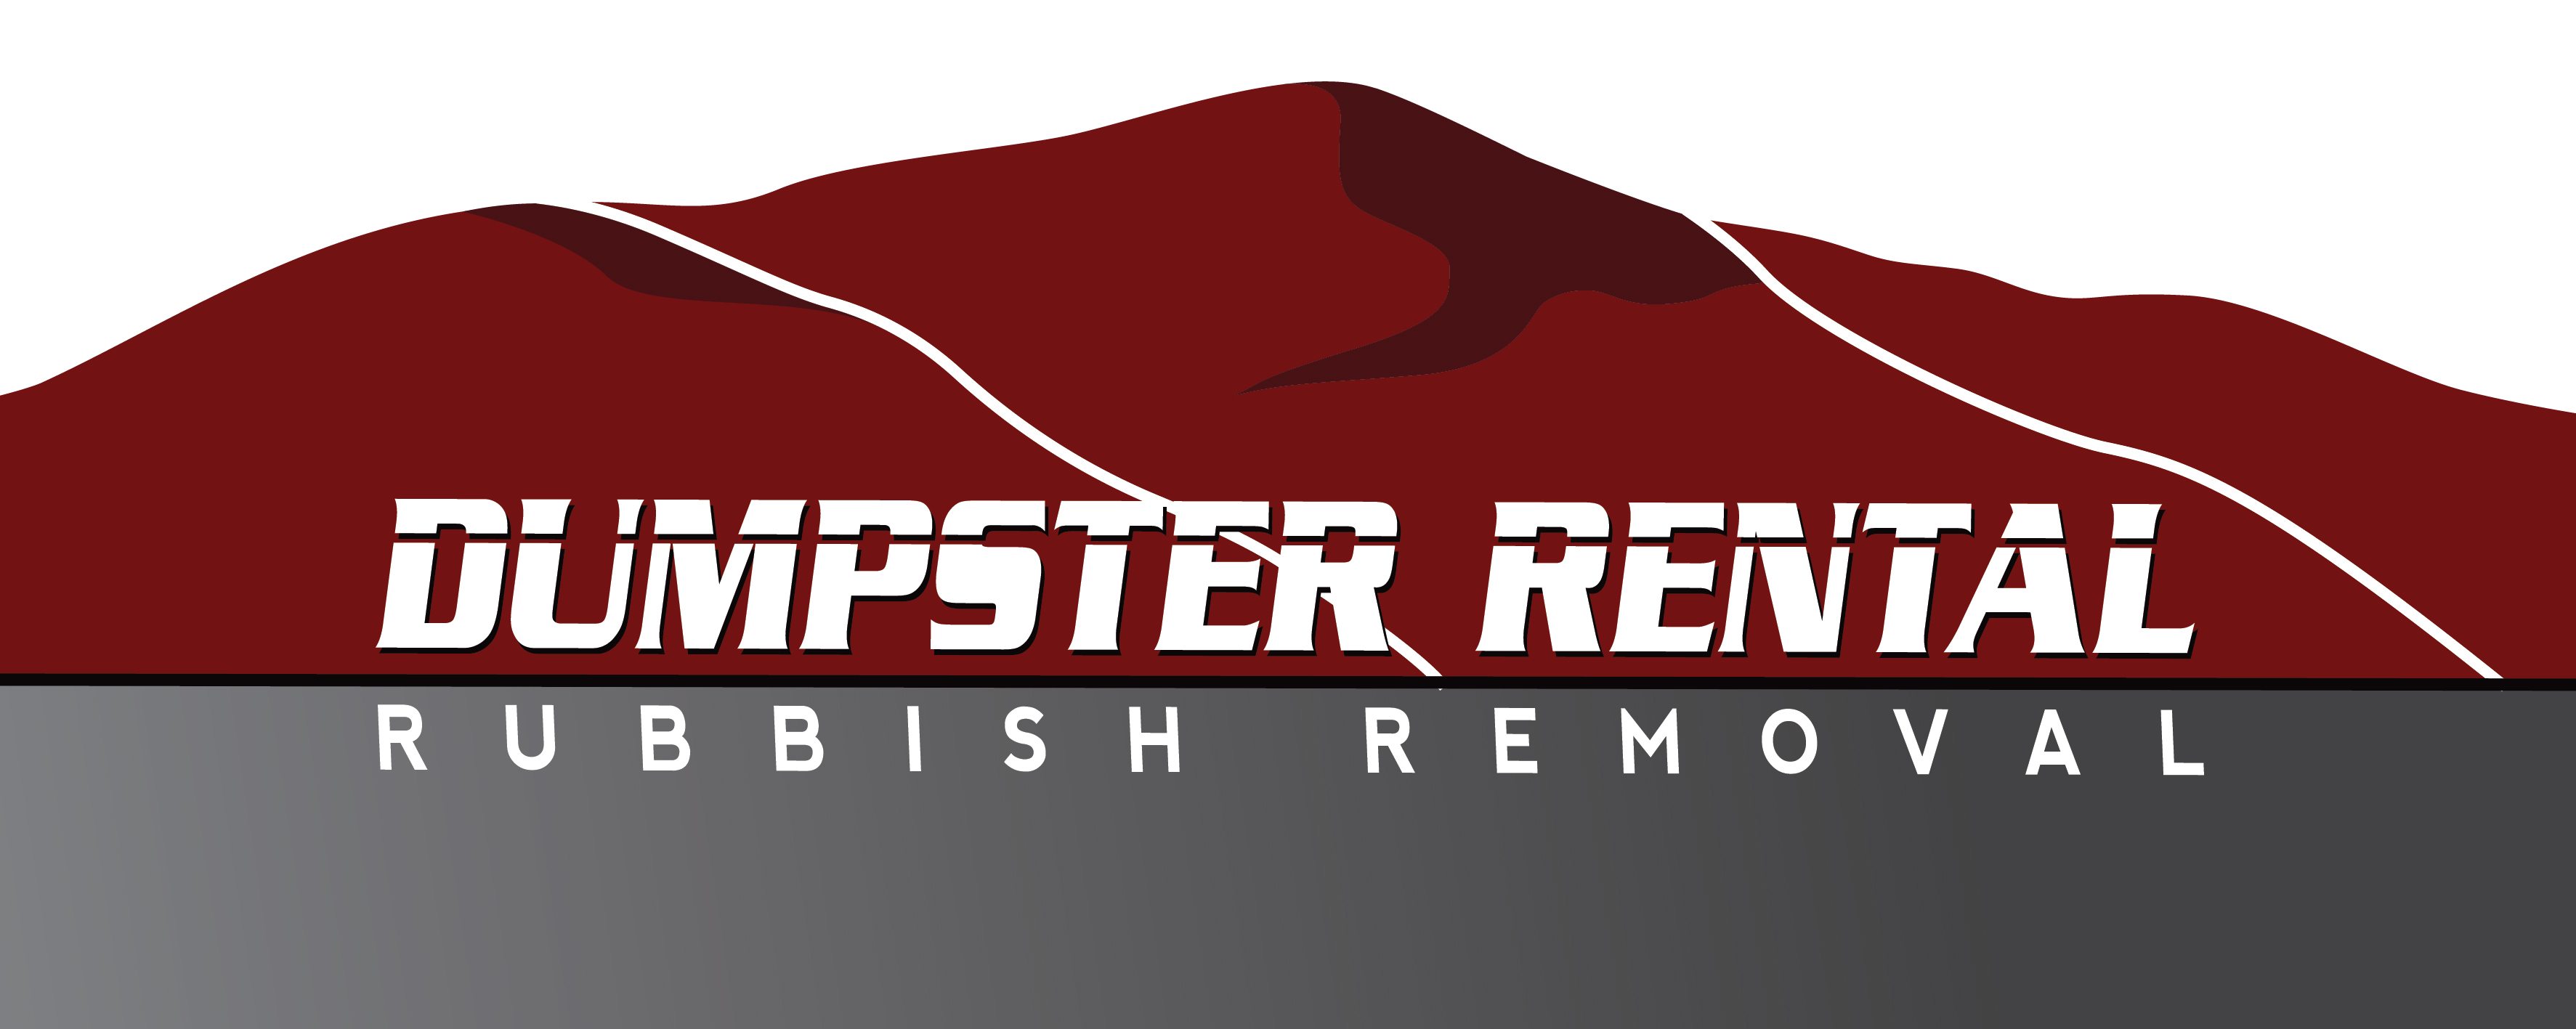 DumpsterRental_SocialMediaExamples_Cover Photo – Red Mtn